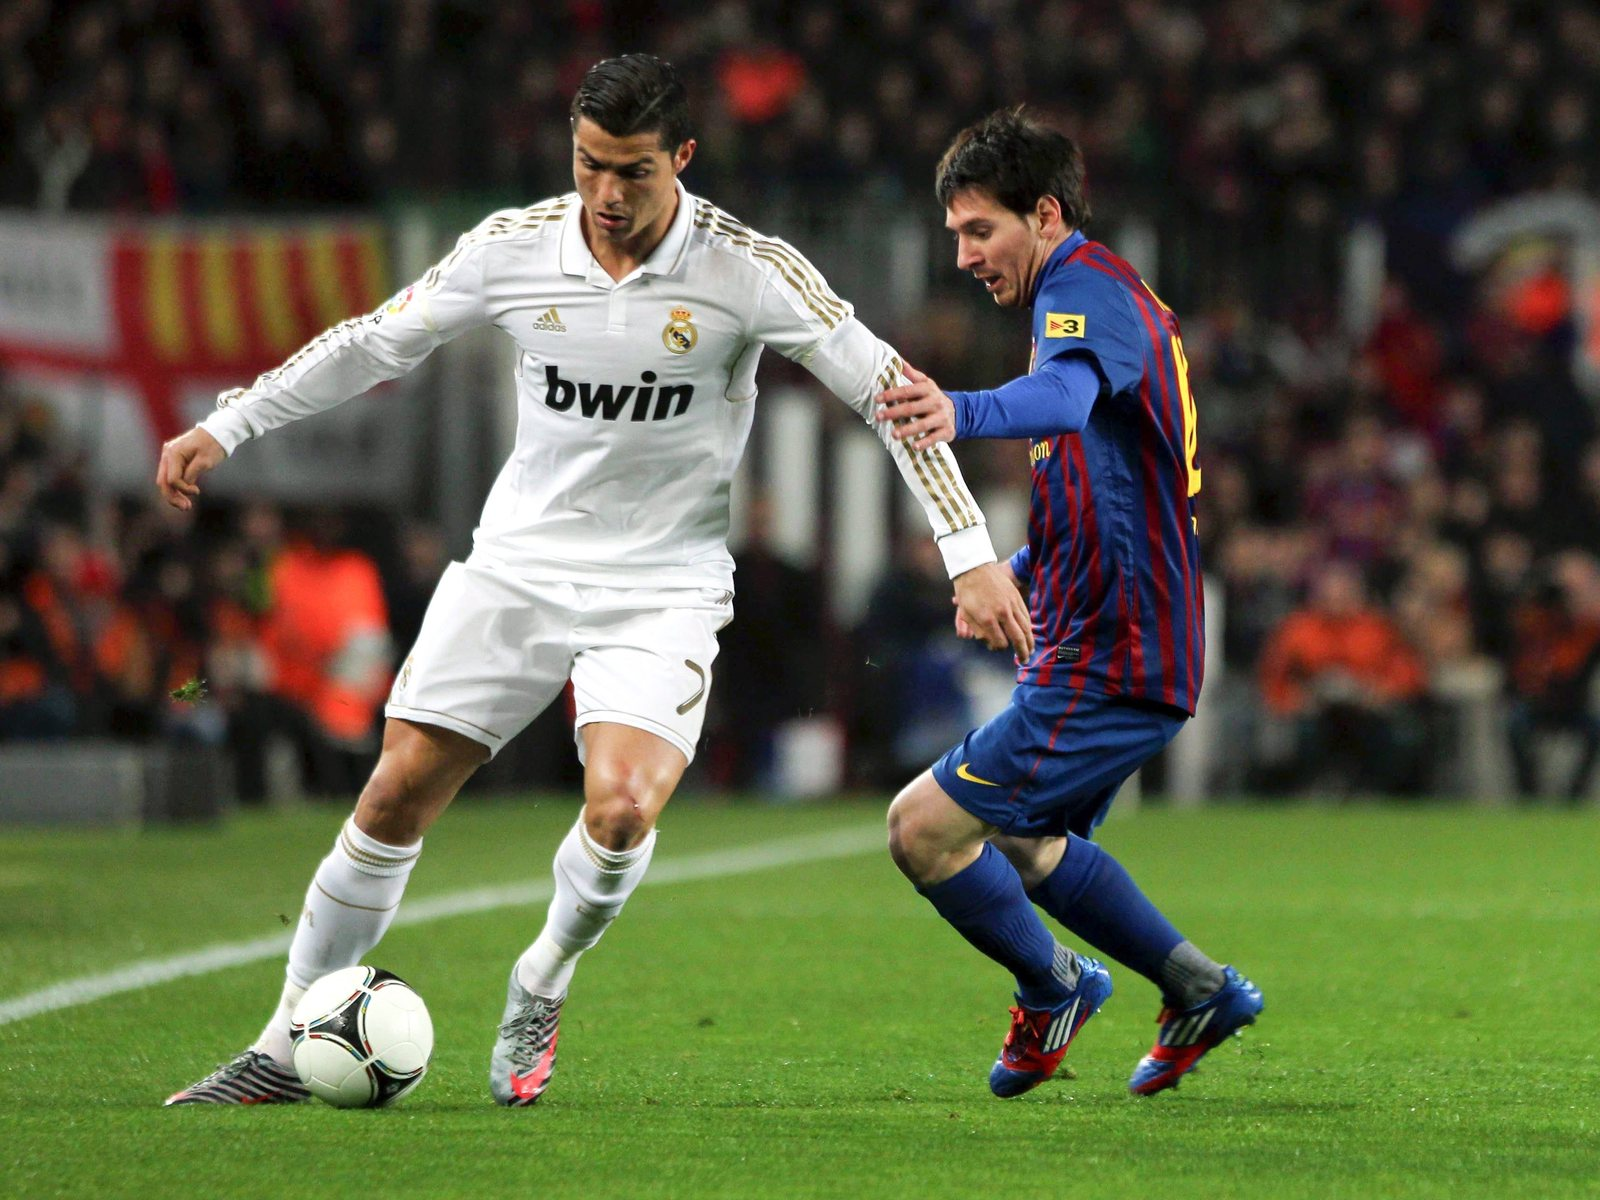 Ronaldo Vs Messi Wallpaper 2012 13 Ronaldo Vs Messi Wallpaper 2012 13